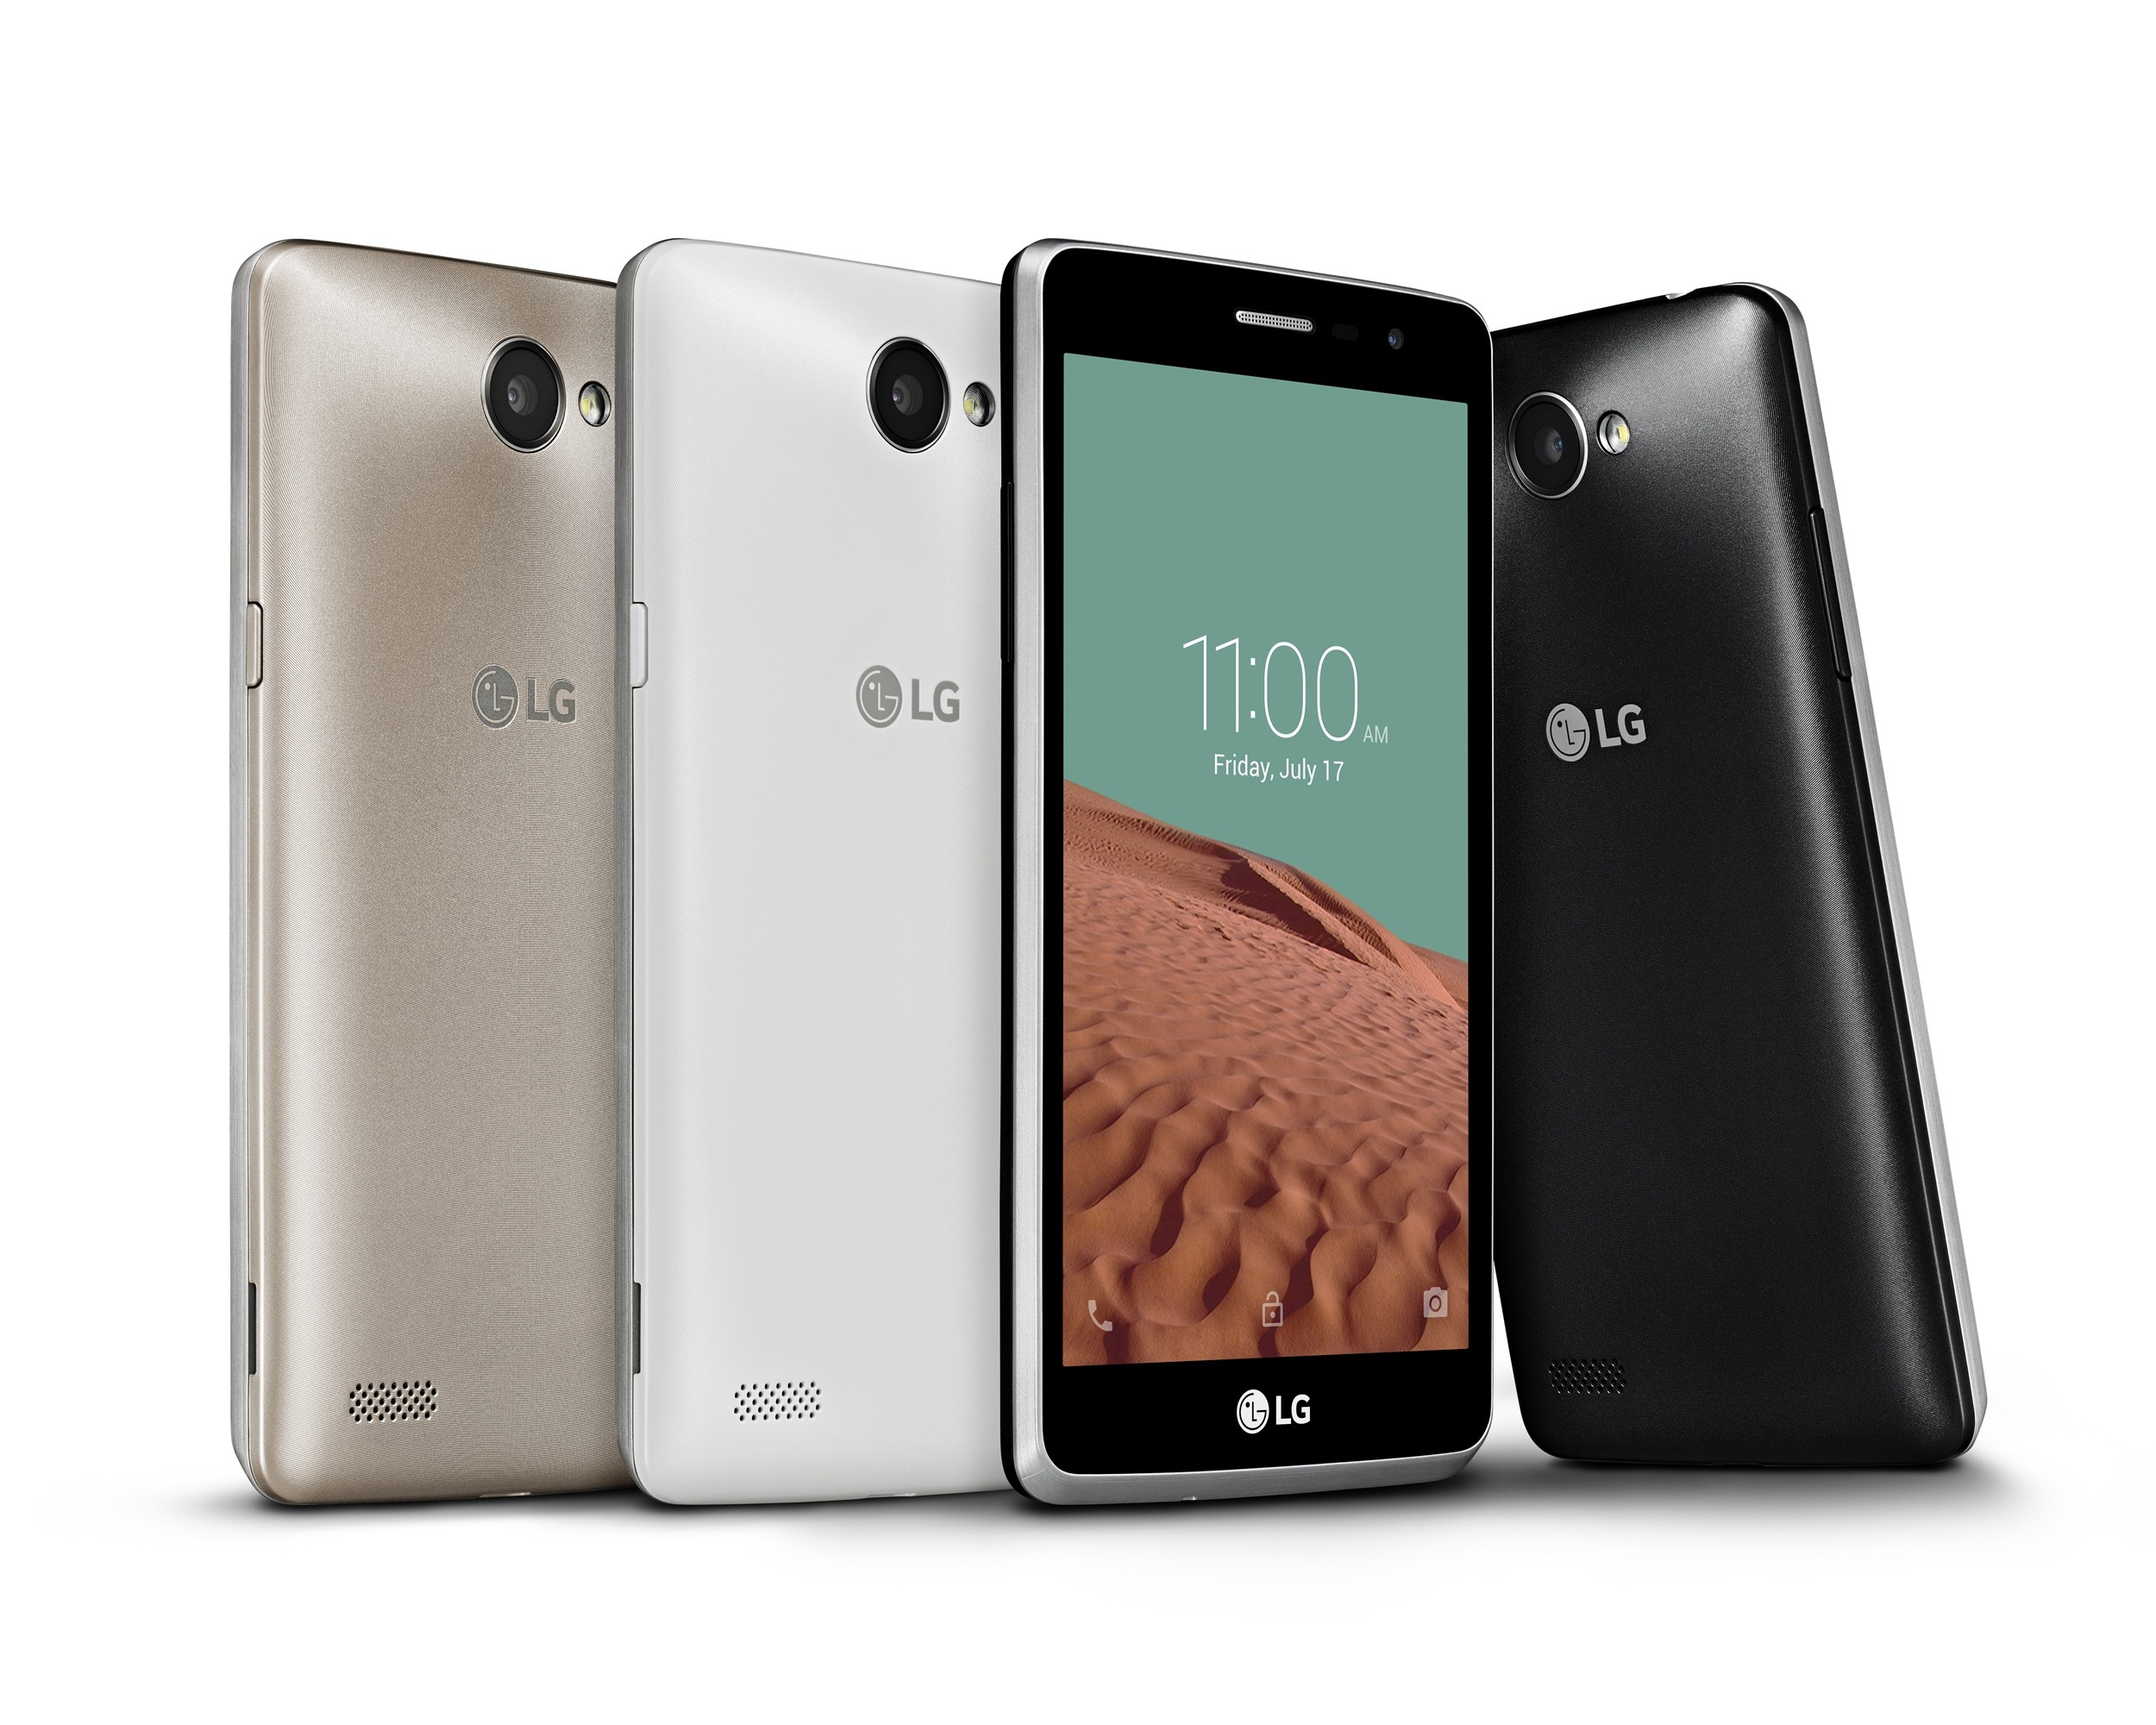 From left to right; back views of LG Bello IIs each in gold color and white color, a front view of LG Bello II in black color and a back view of LG Bello II.